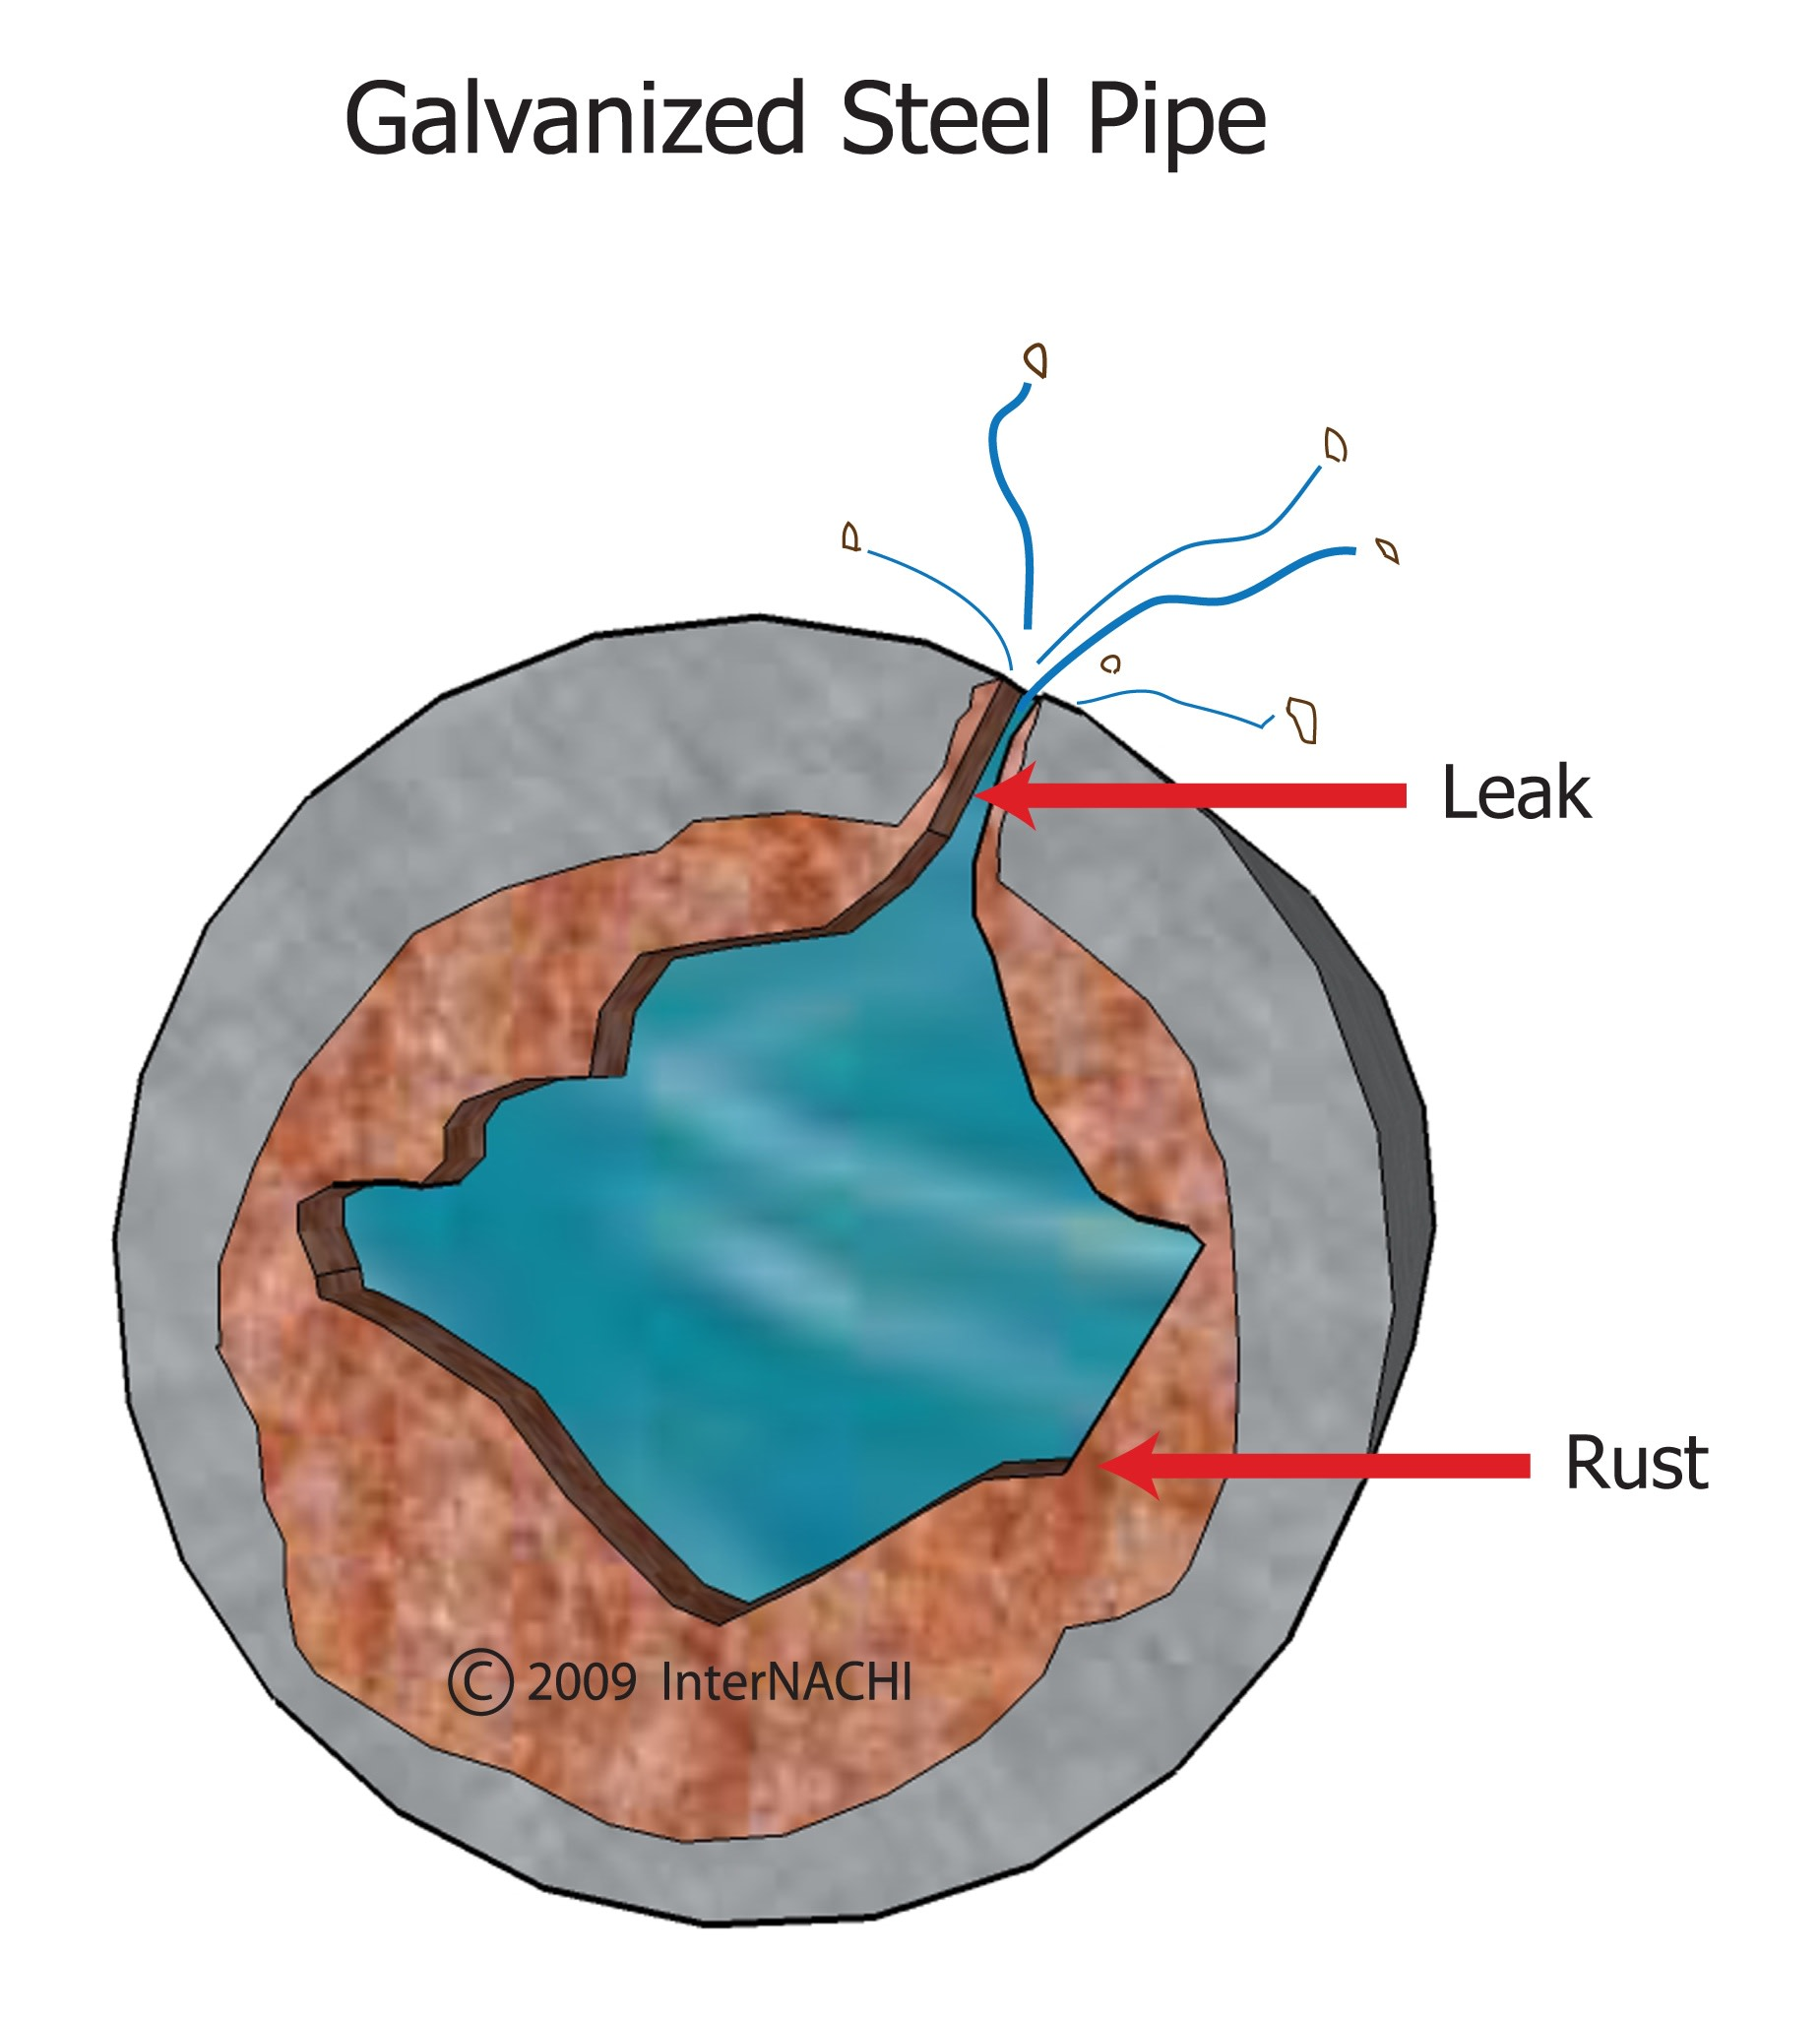 Galvanized steel pipe leak.